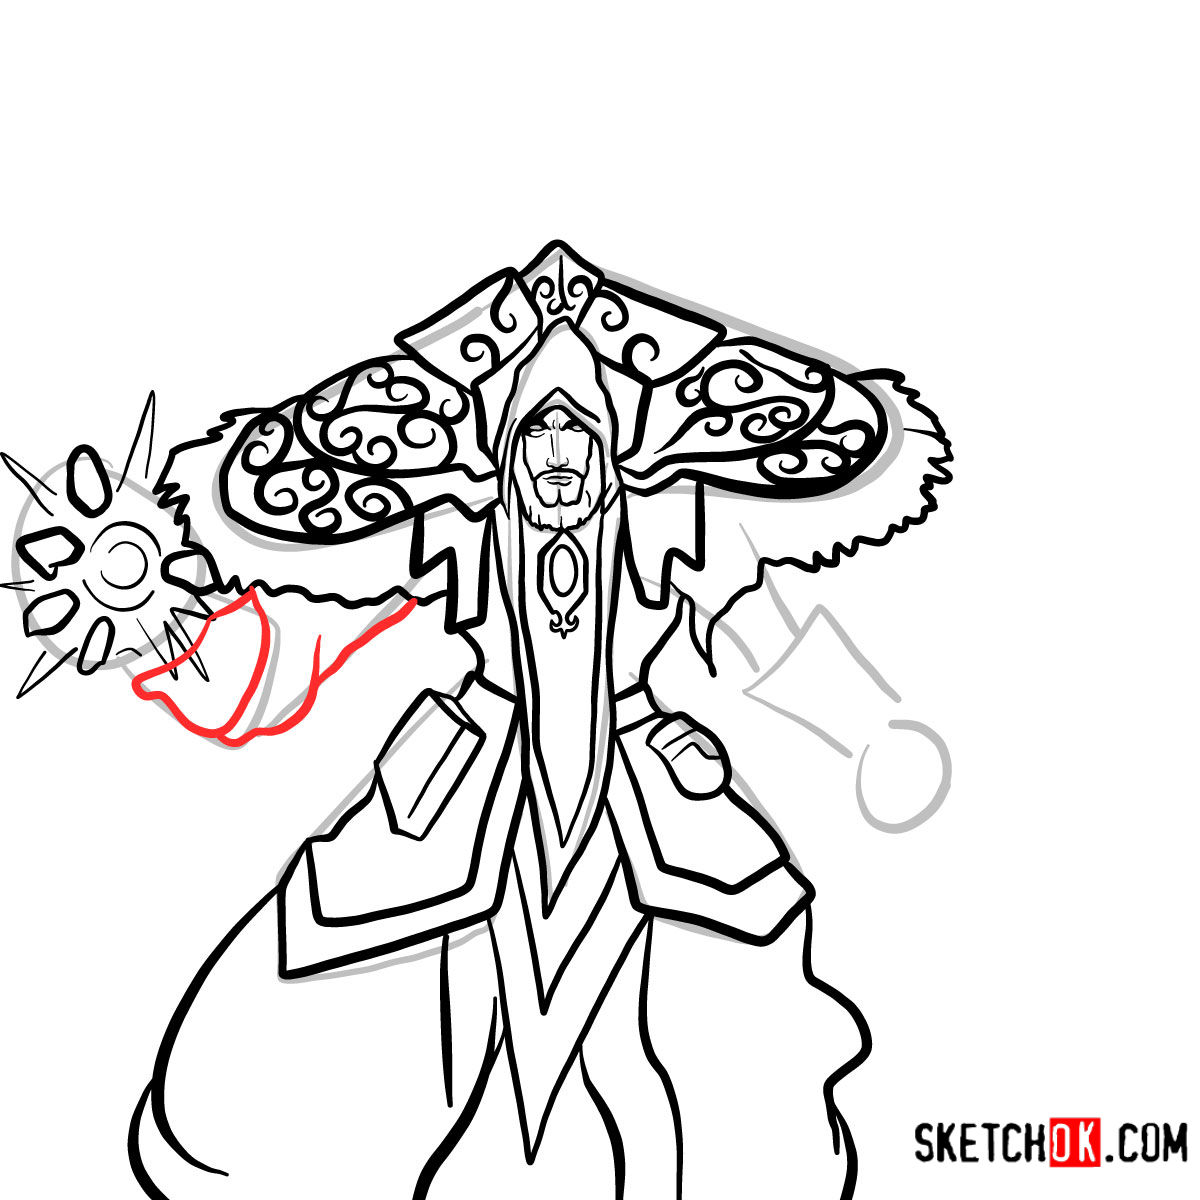 How to draw Magus Medivh | World of Warcraft - step 13